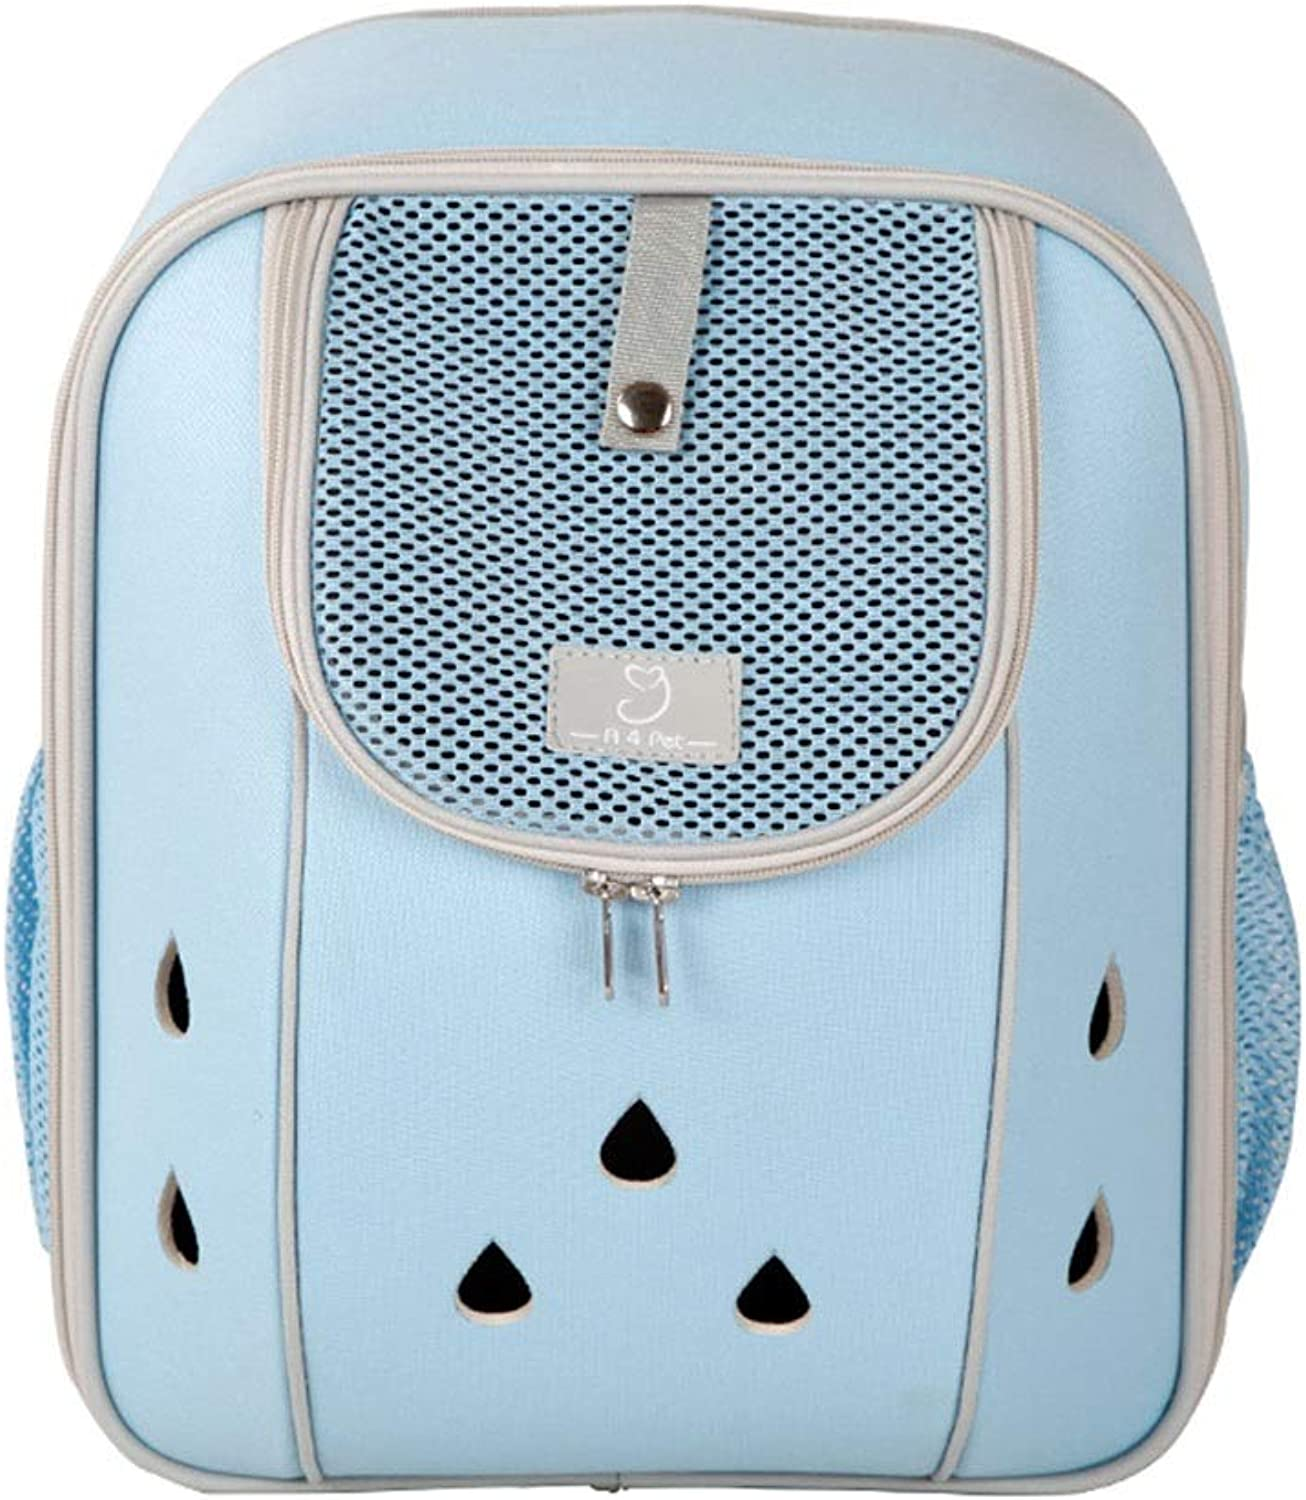 Cages, Crates & Carriers Pet Backpack Cat Out View Box Portable Backpack Home Ventilation Kennel Cat Space Capsule Travel Pet Bag Bearing 3 5KG (color   blueee, Size   26  16  34cm)